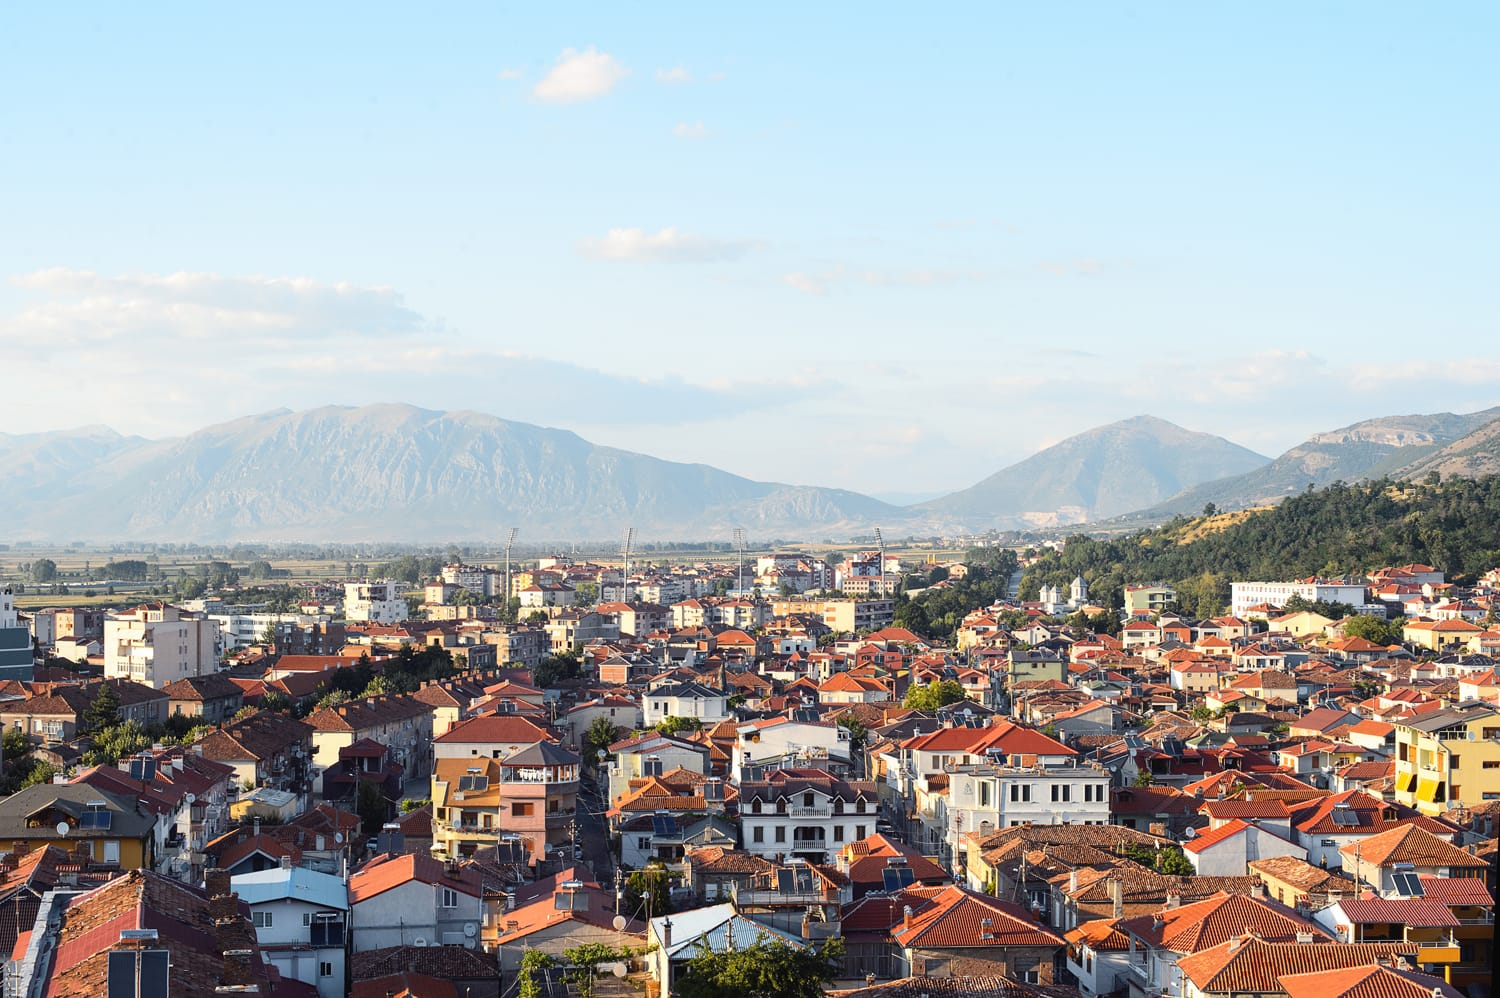 Panoramic aerial view to Korca, the town in southwest of Albania, the mountains and the red tile roofs of its buildings.